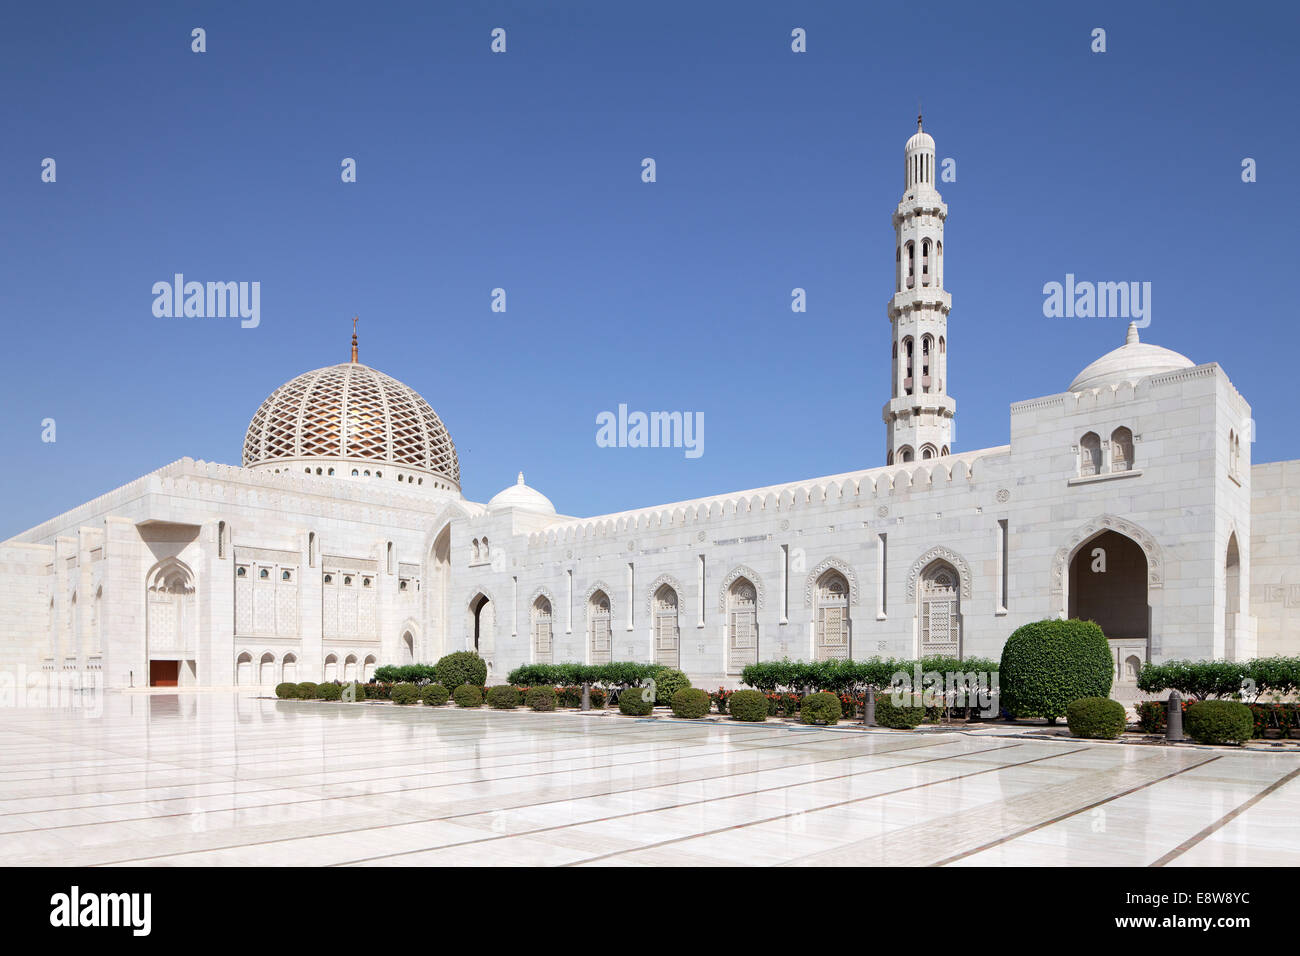 Sultan Qaboos Grand Mosque, Muscat, Oman - Stock Image